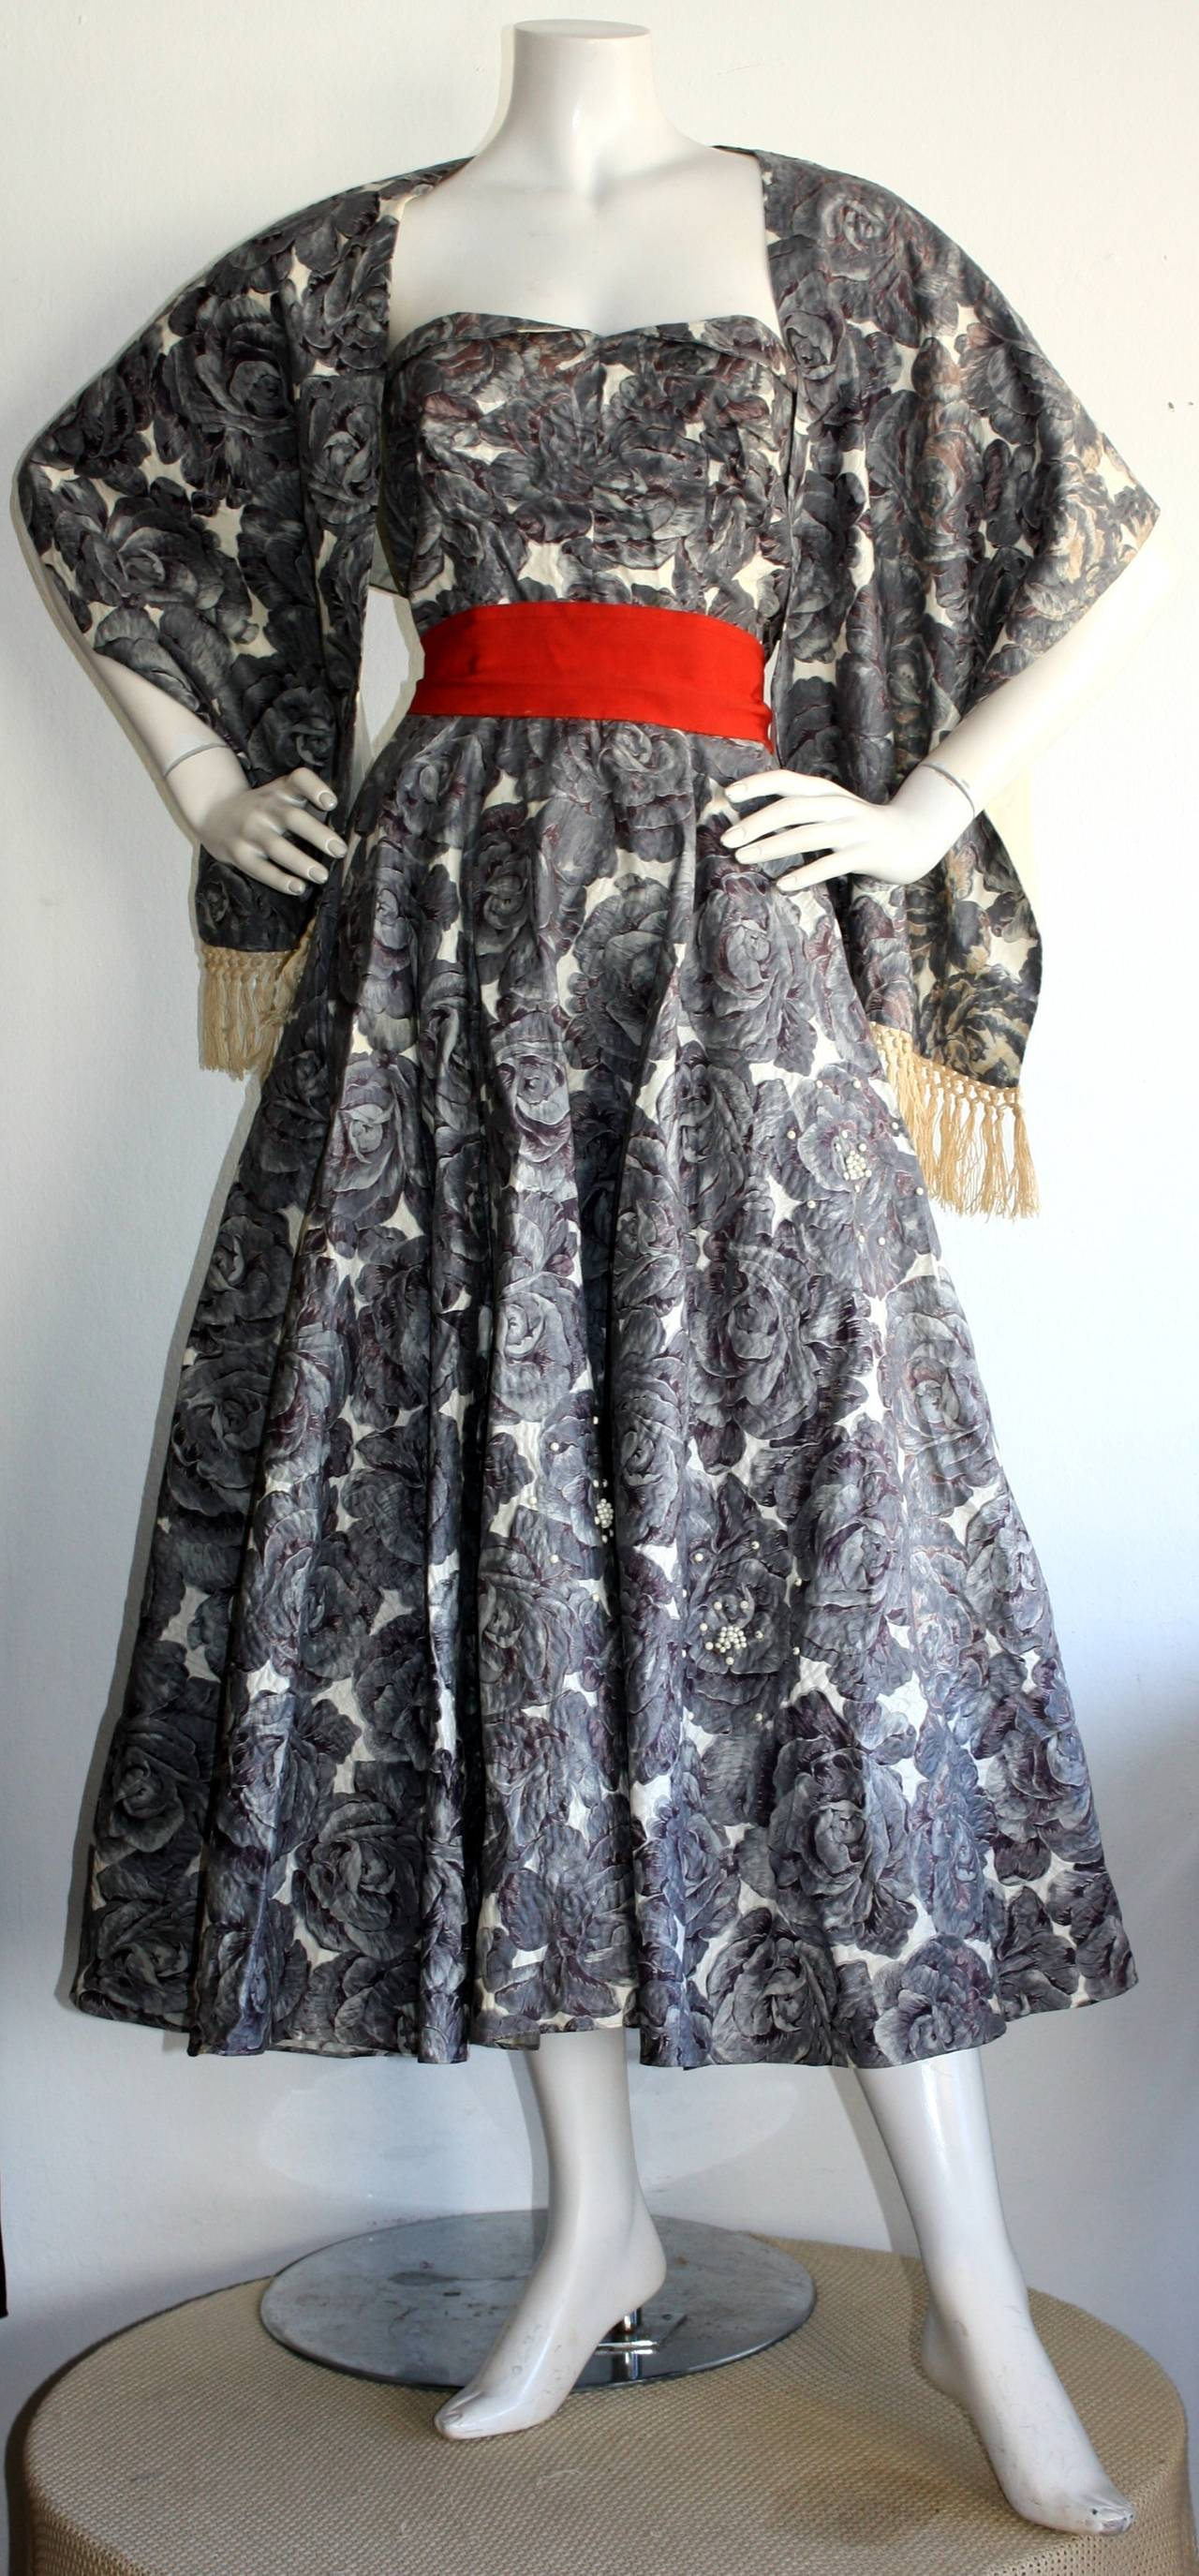 Incredible vintage Fred Perlberg dress and fringed shawl. Beautiful grey  and white rose print, with attached bright red belt. Shelf bust, with white opaque beads throughout the skirt. Attached crinoline. In great condition. Approximately Size